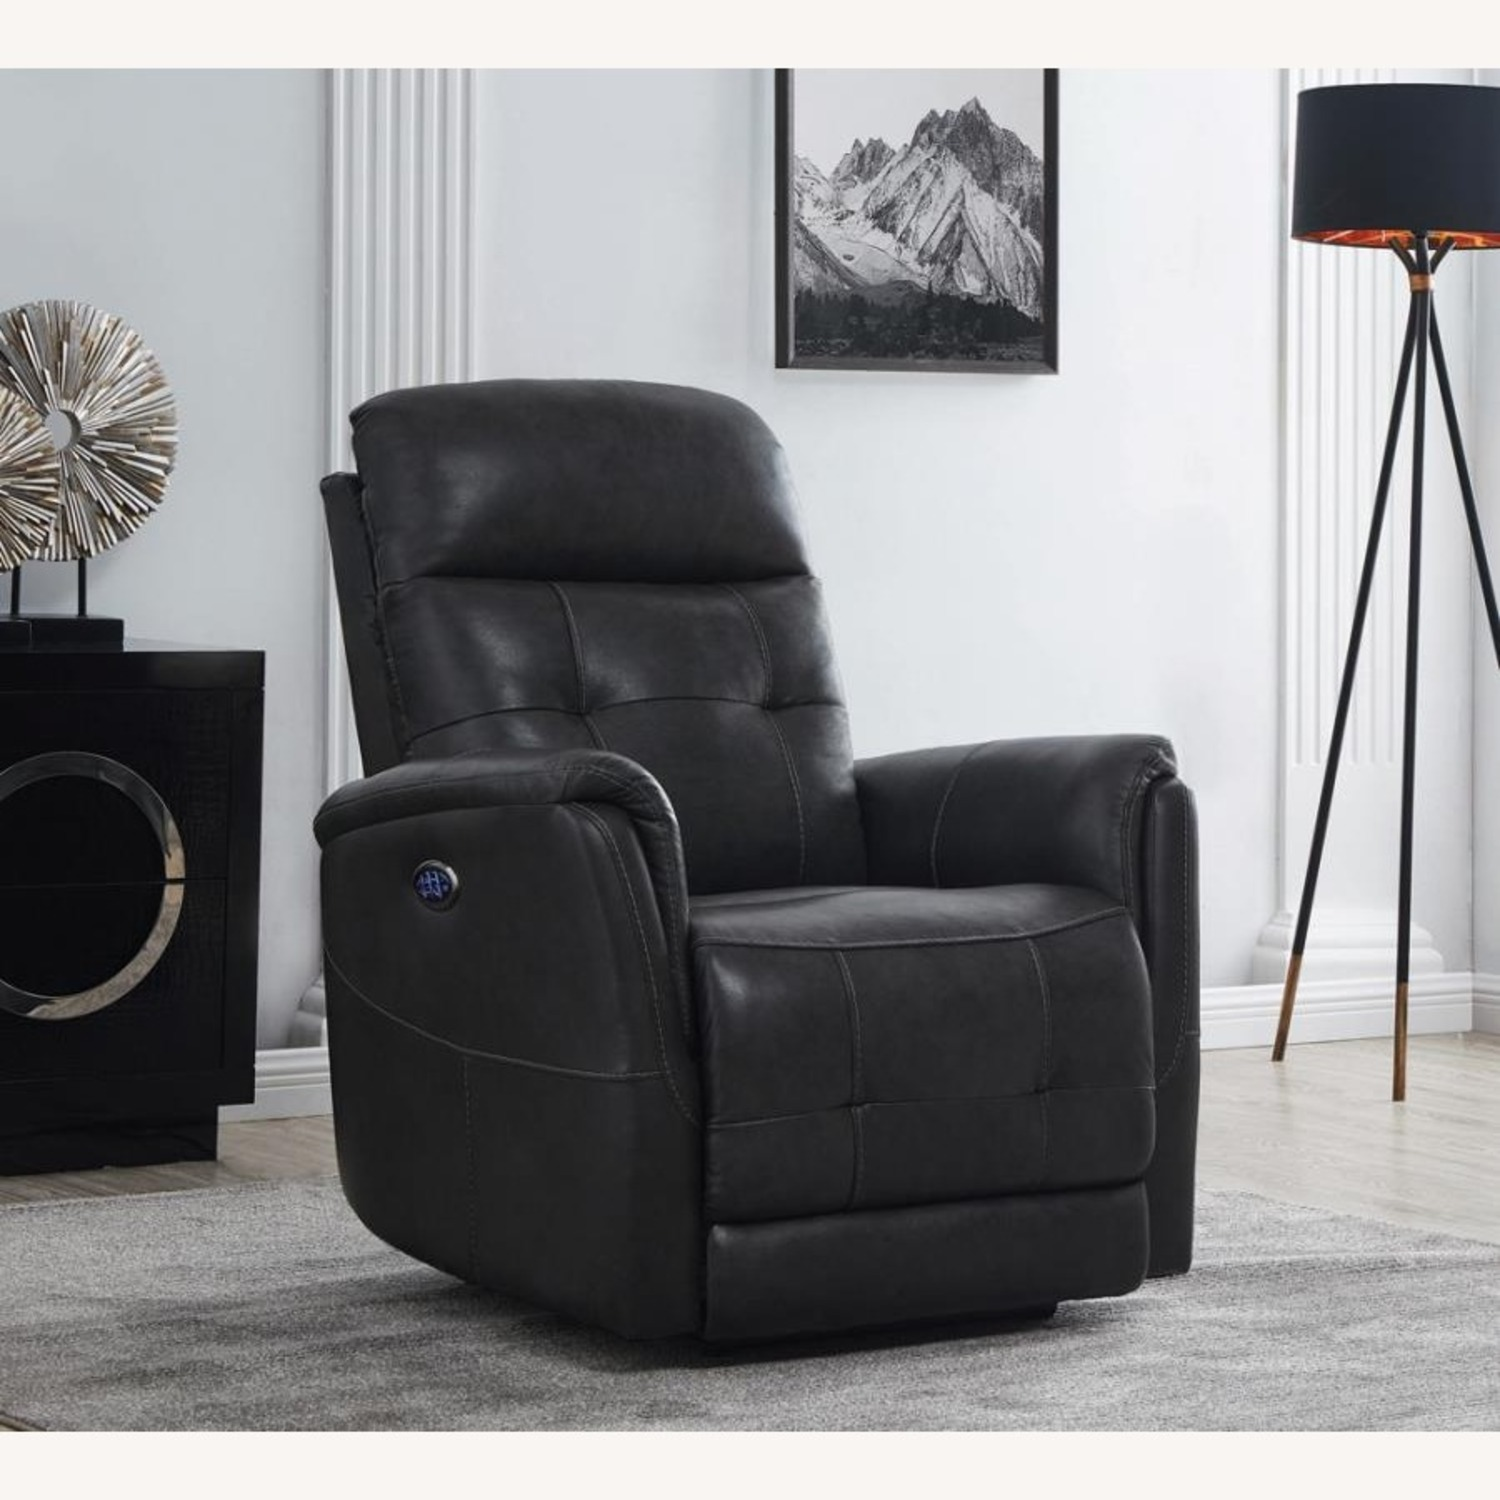 Power Recliner In Grey Leather Upholstery - image-8